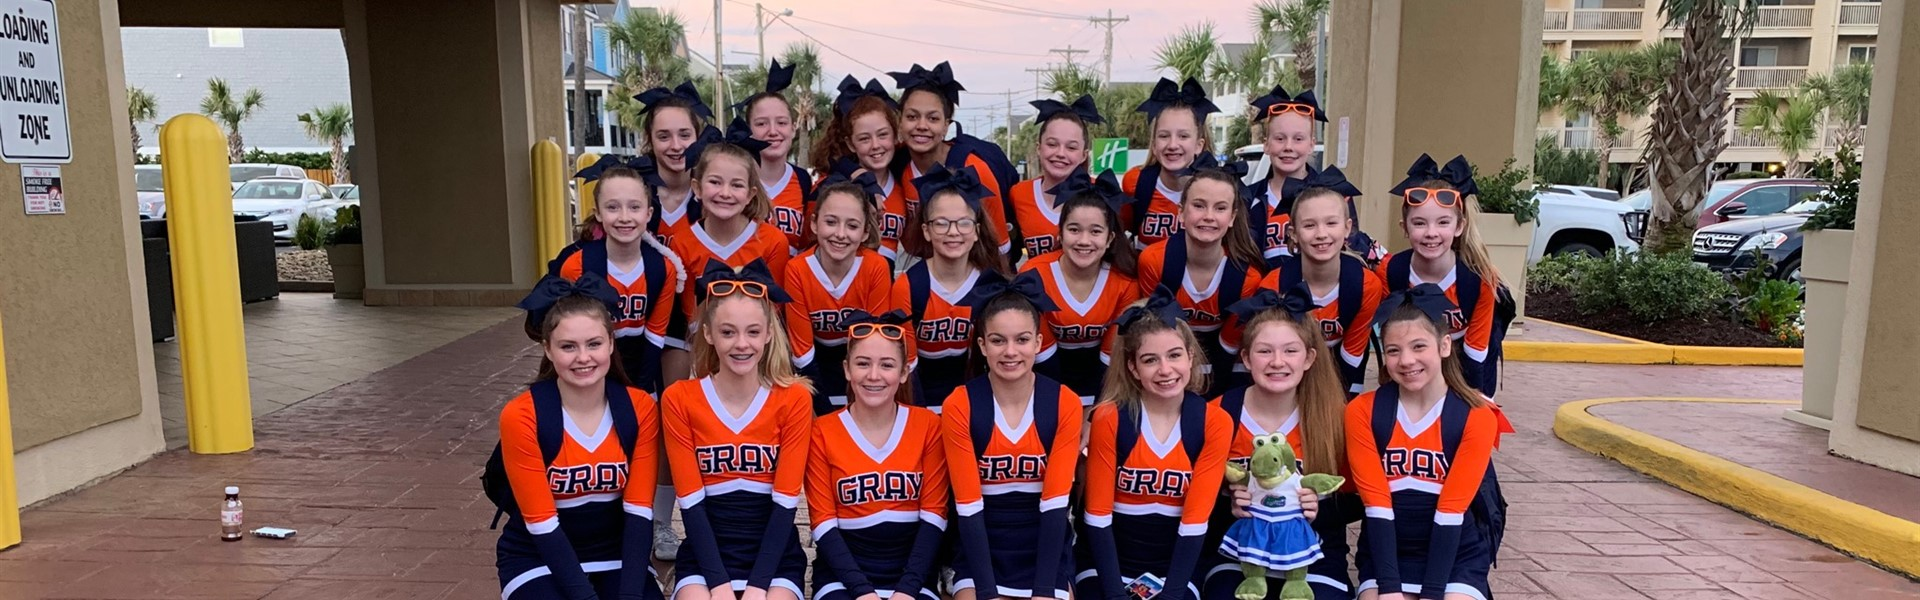 National Cheer Competition, Myrtle Beach